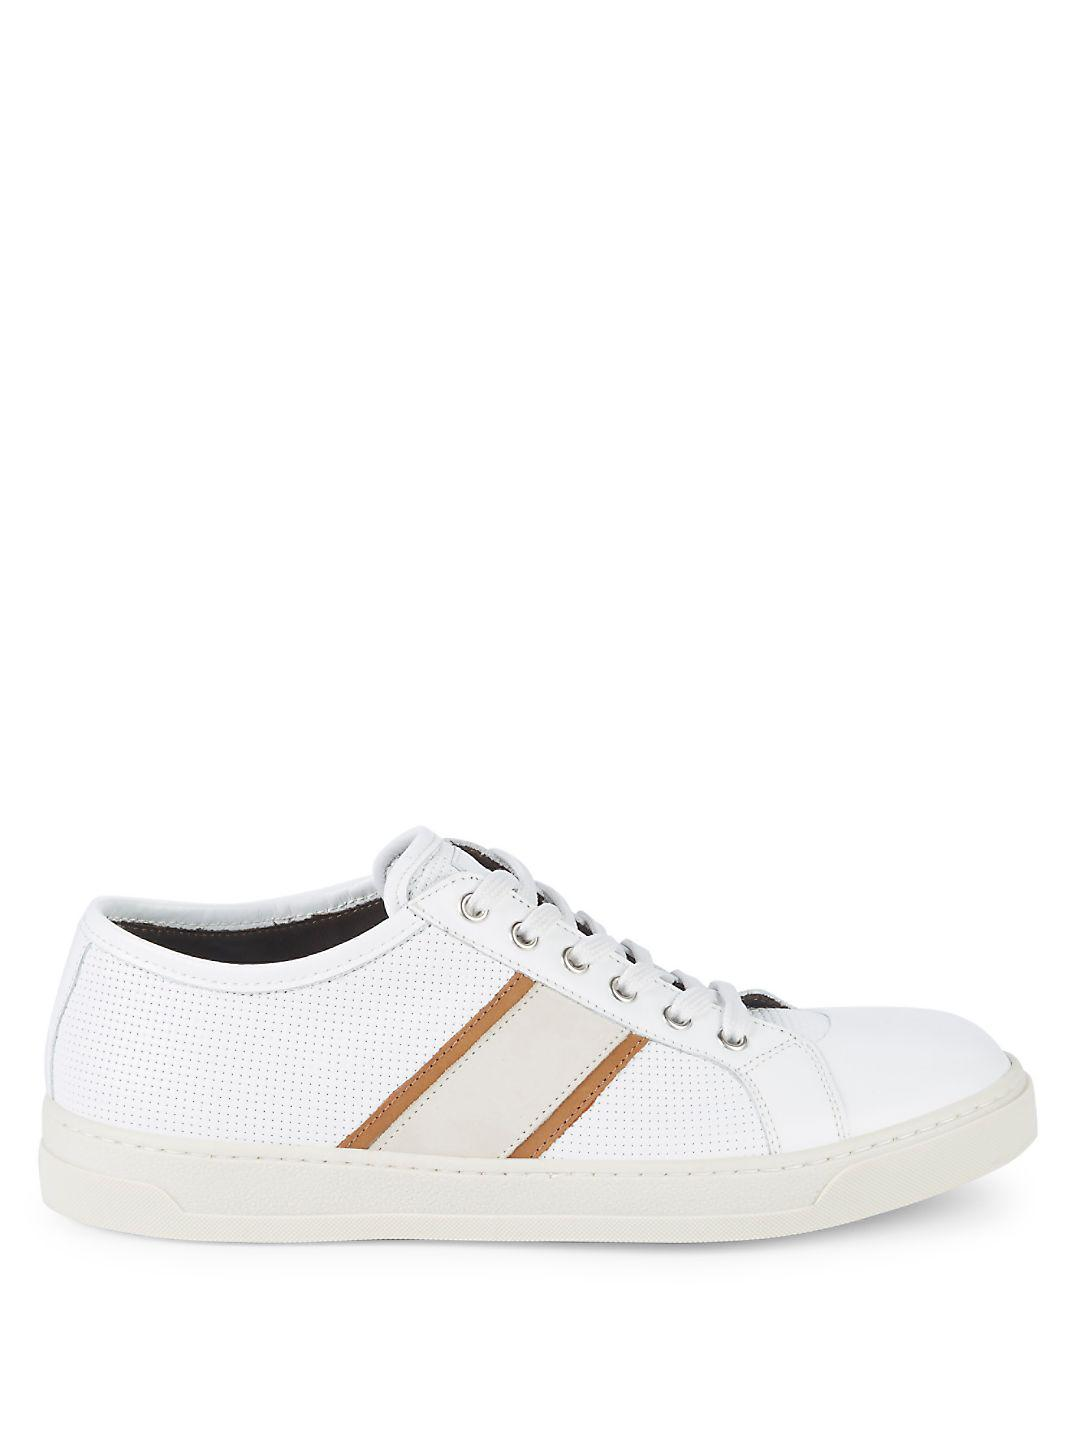 Bruno Magli Vico Leather Sneakers in White